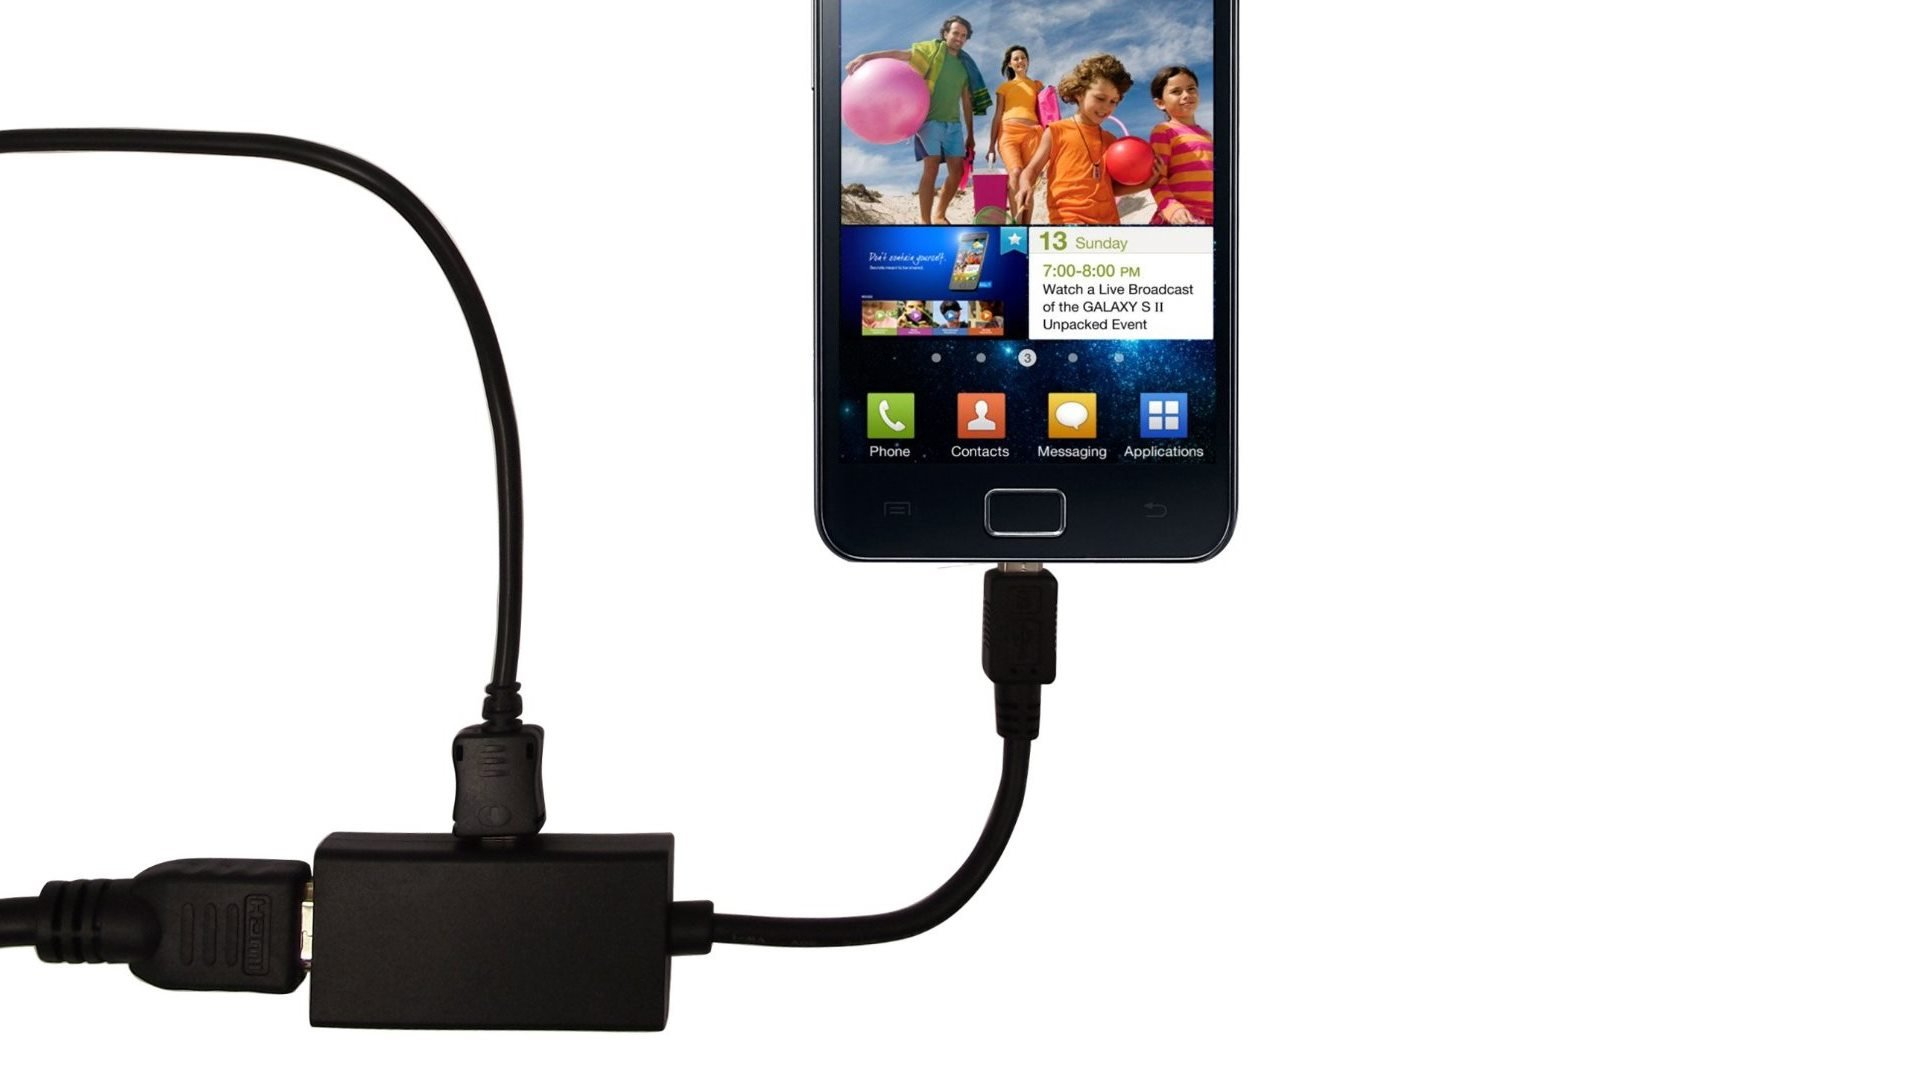 Usb Cable For Android Phone To Tv:  Expert Reviewsrh:expertreviews.co.uk,Design